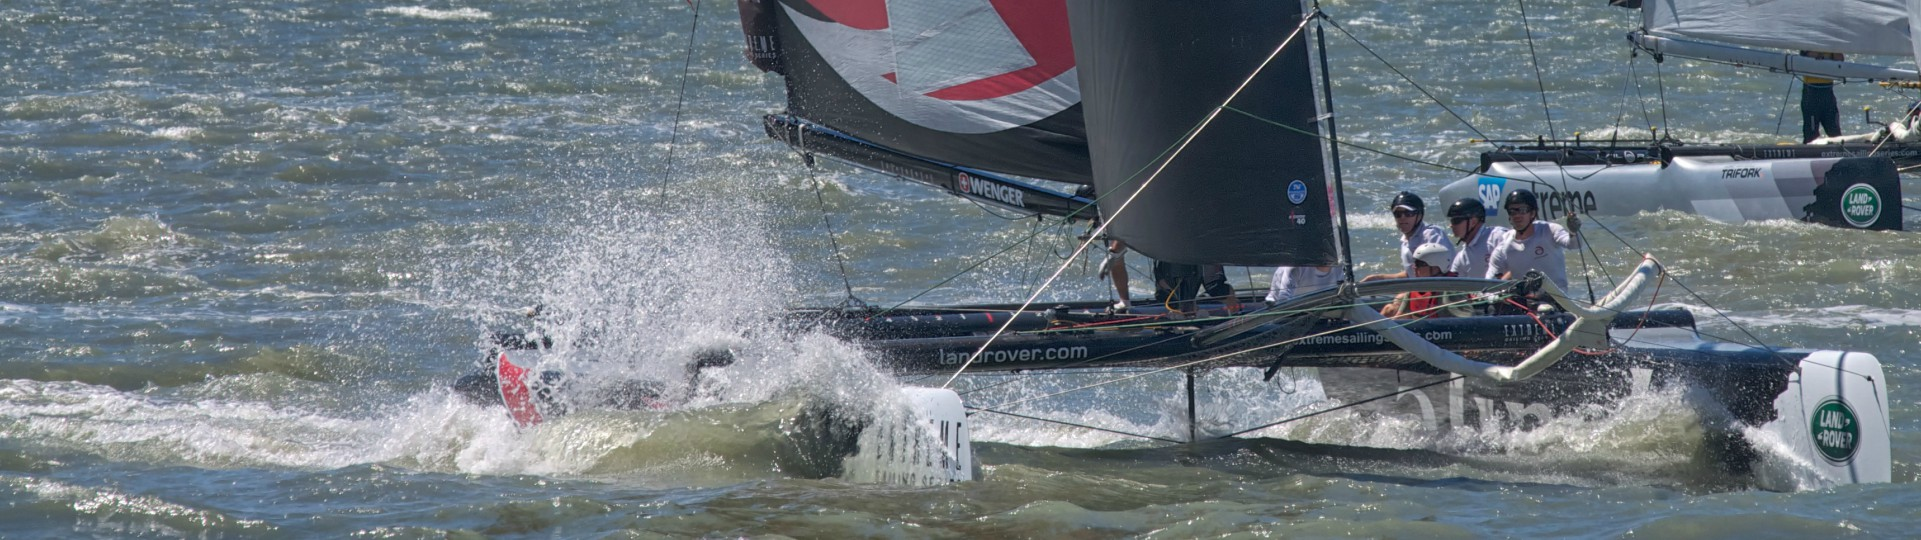 Extreme Sailing by Octavio Nogueira on Flickr. Creative Commons